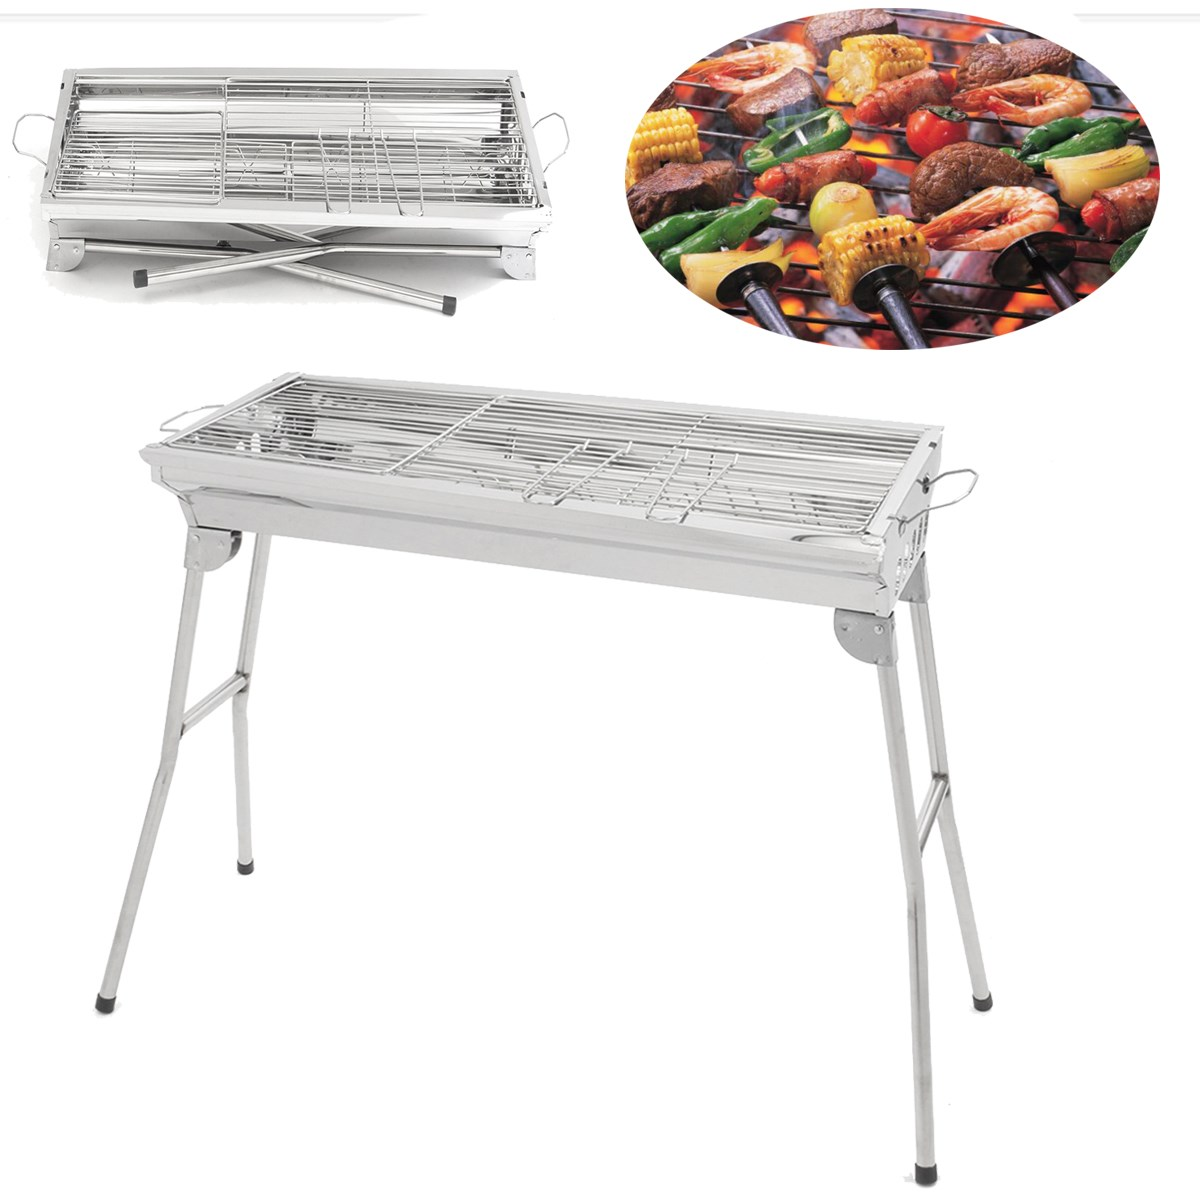 stainless steel foldable charcoal bbq grill barbecue outdoor camping portable bbq accessories roast cooking tools meat - Stainless Steel Charcoal Grill